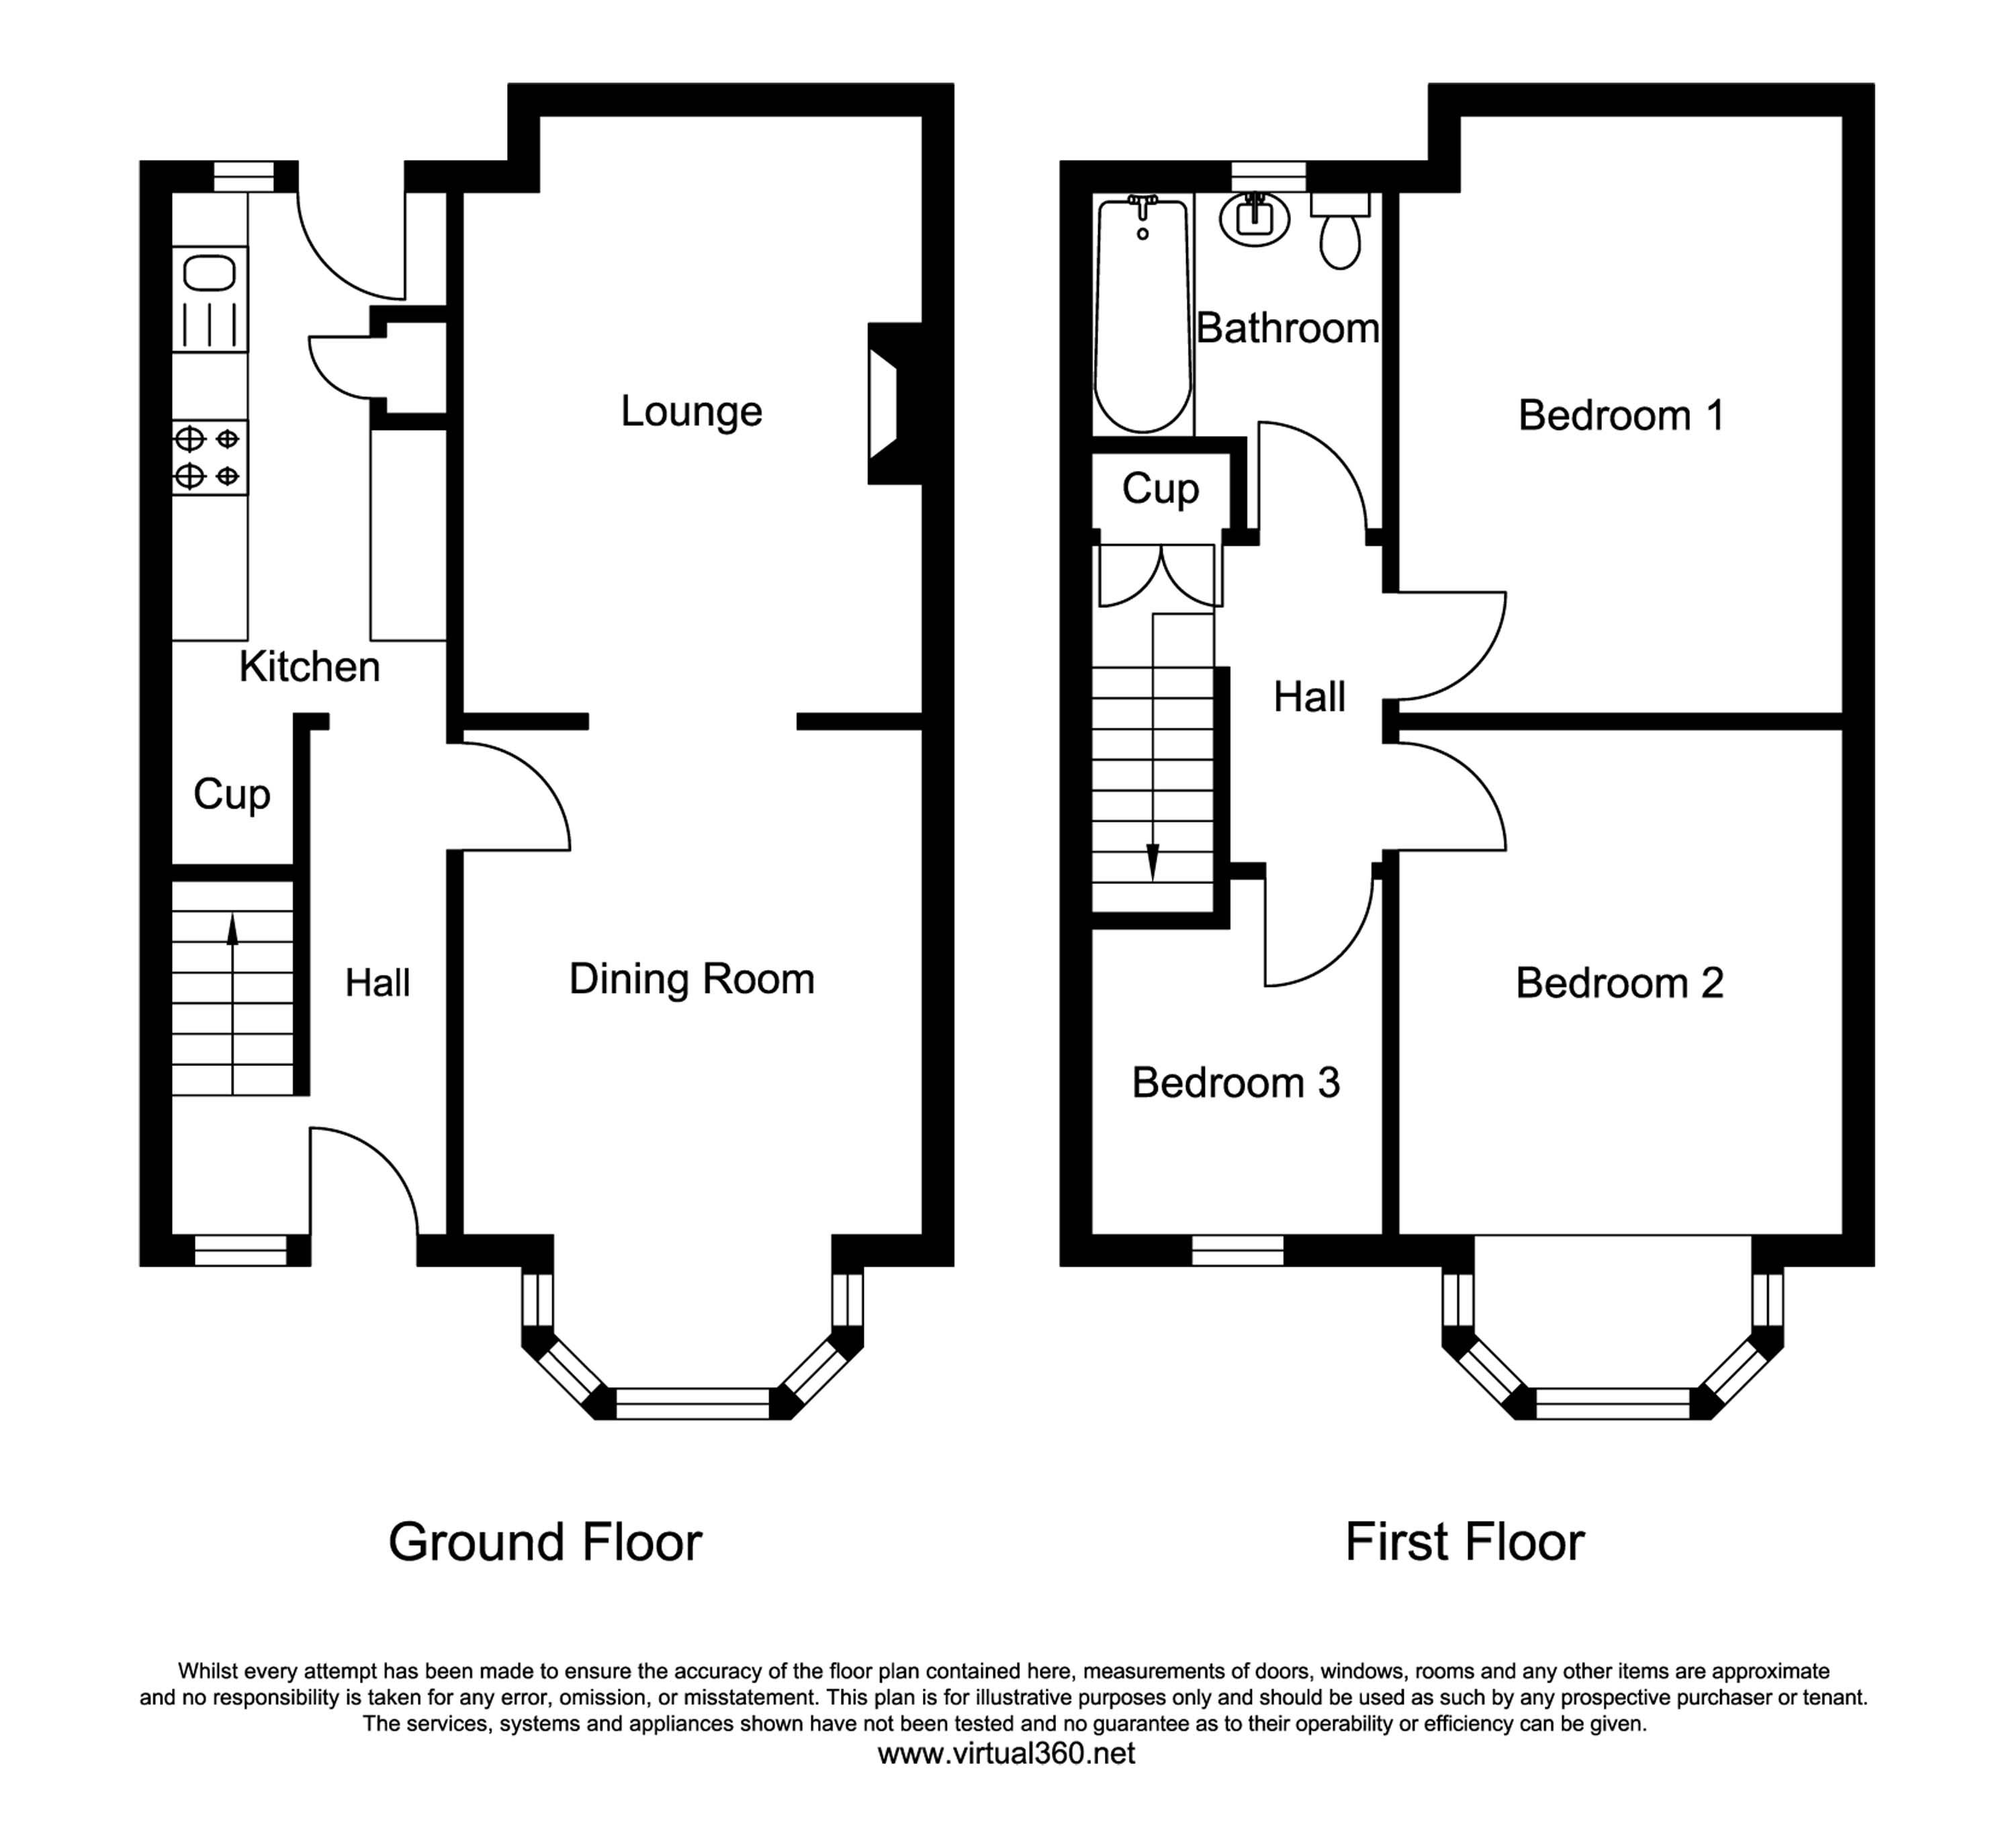 Abbotsford Road, Blackpool floor plan